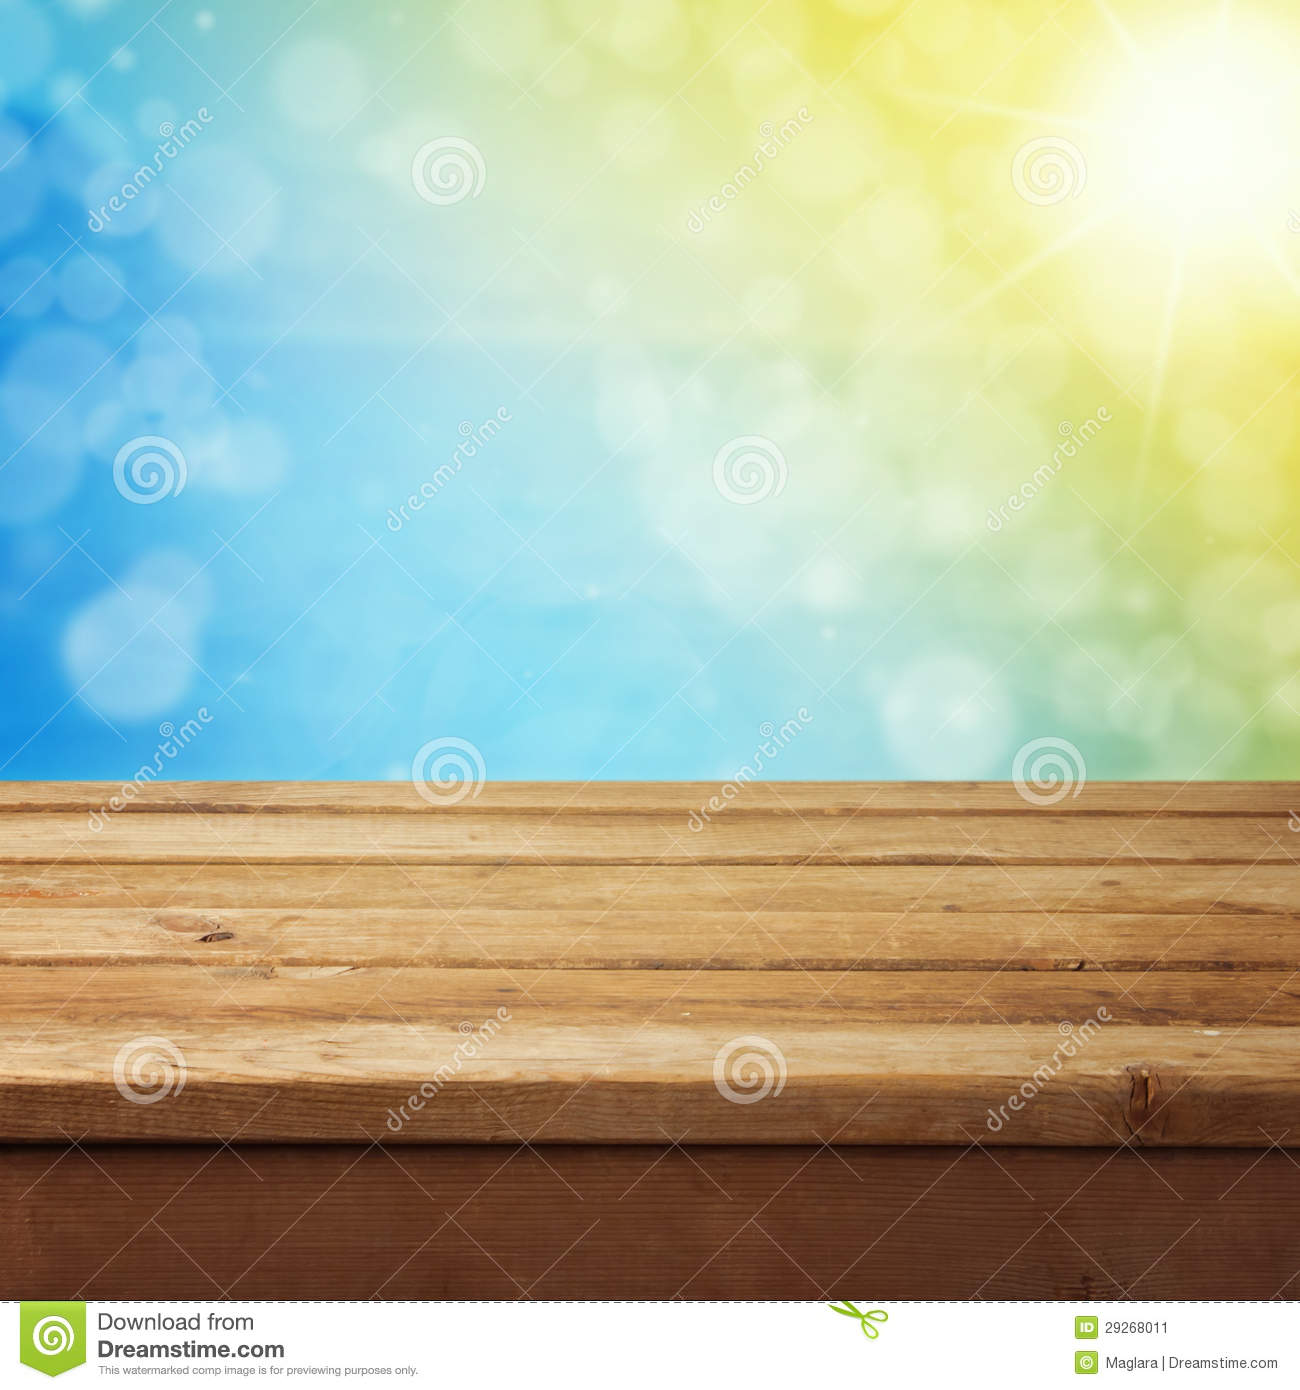 background with wooden deck table empty wooden deck table with sunny ...